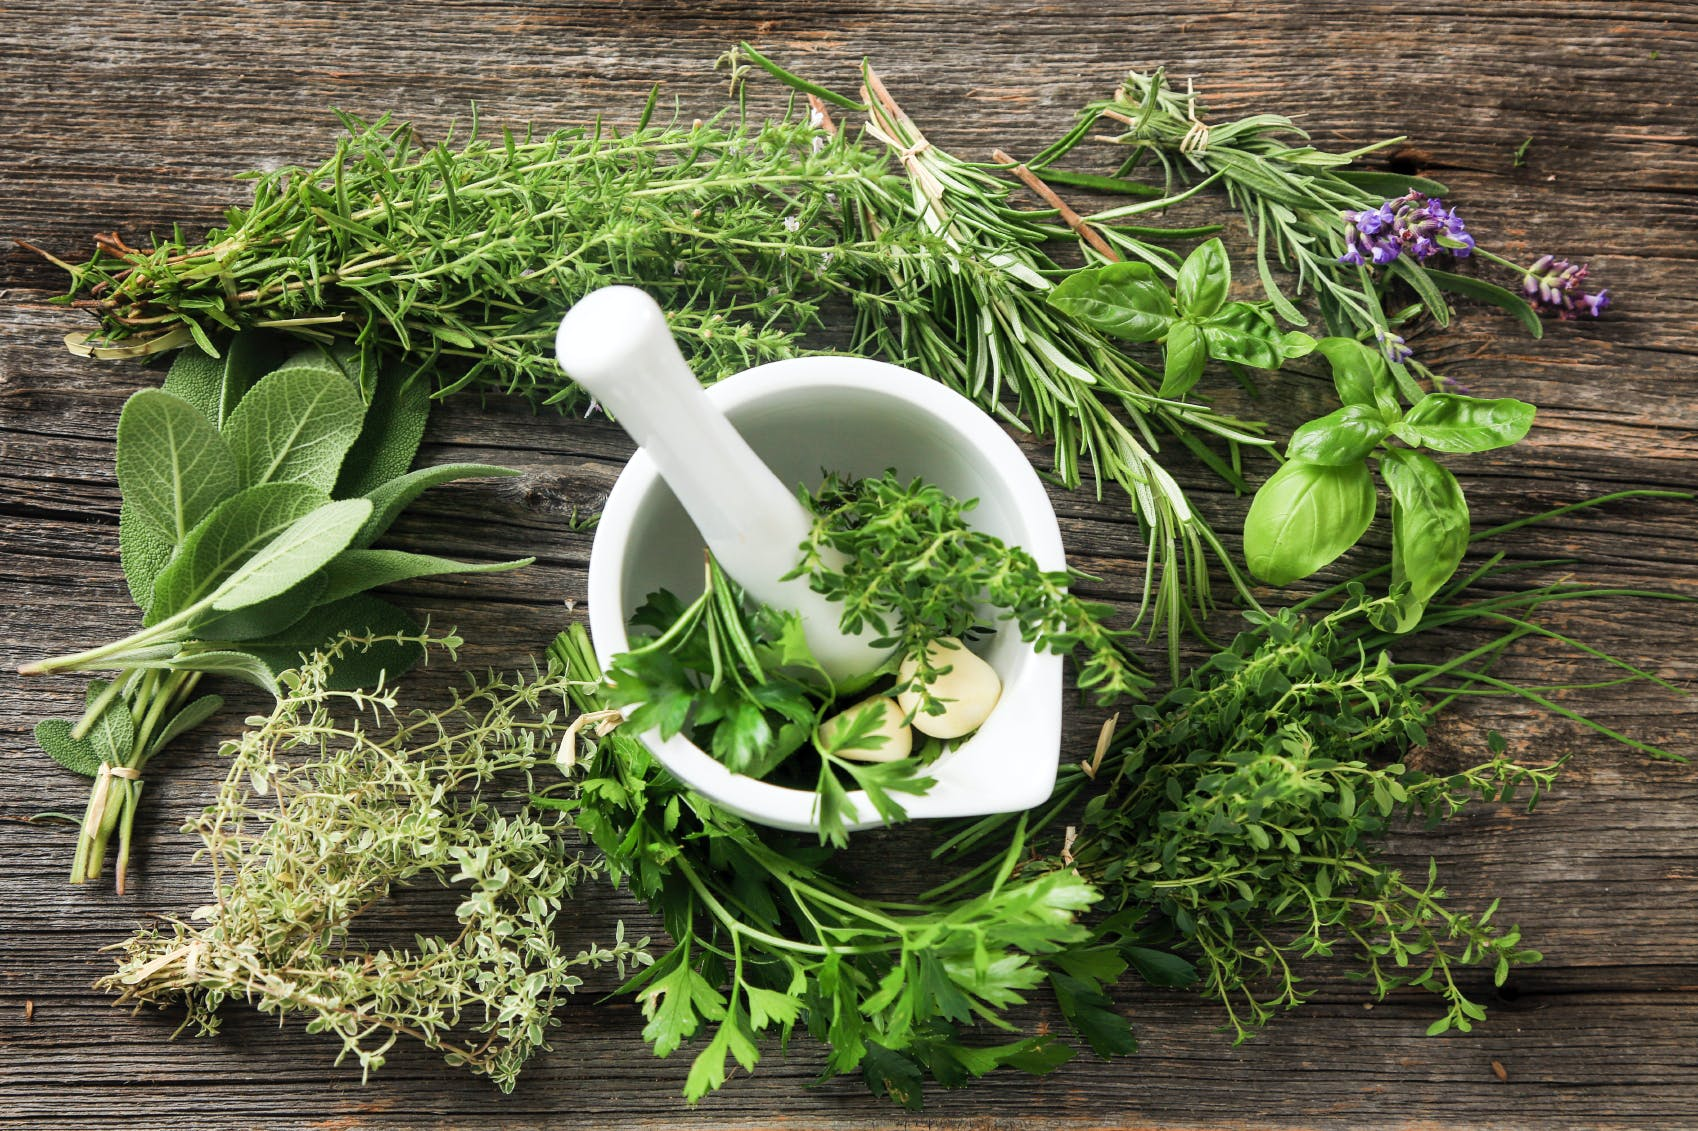 Aromatic plants, detox foods that help digestion ...